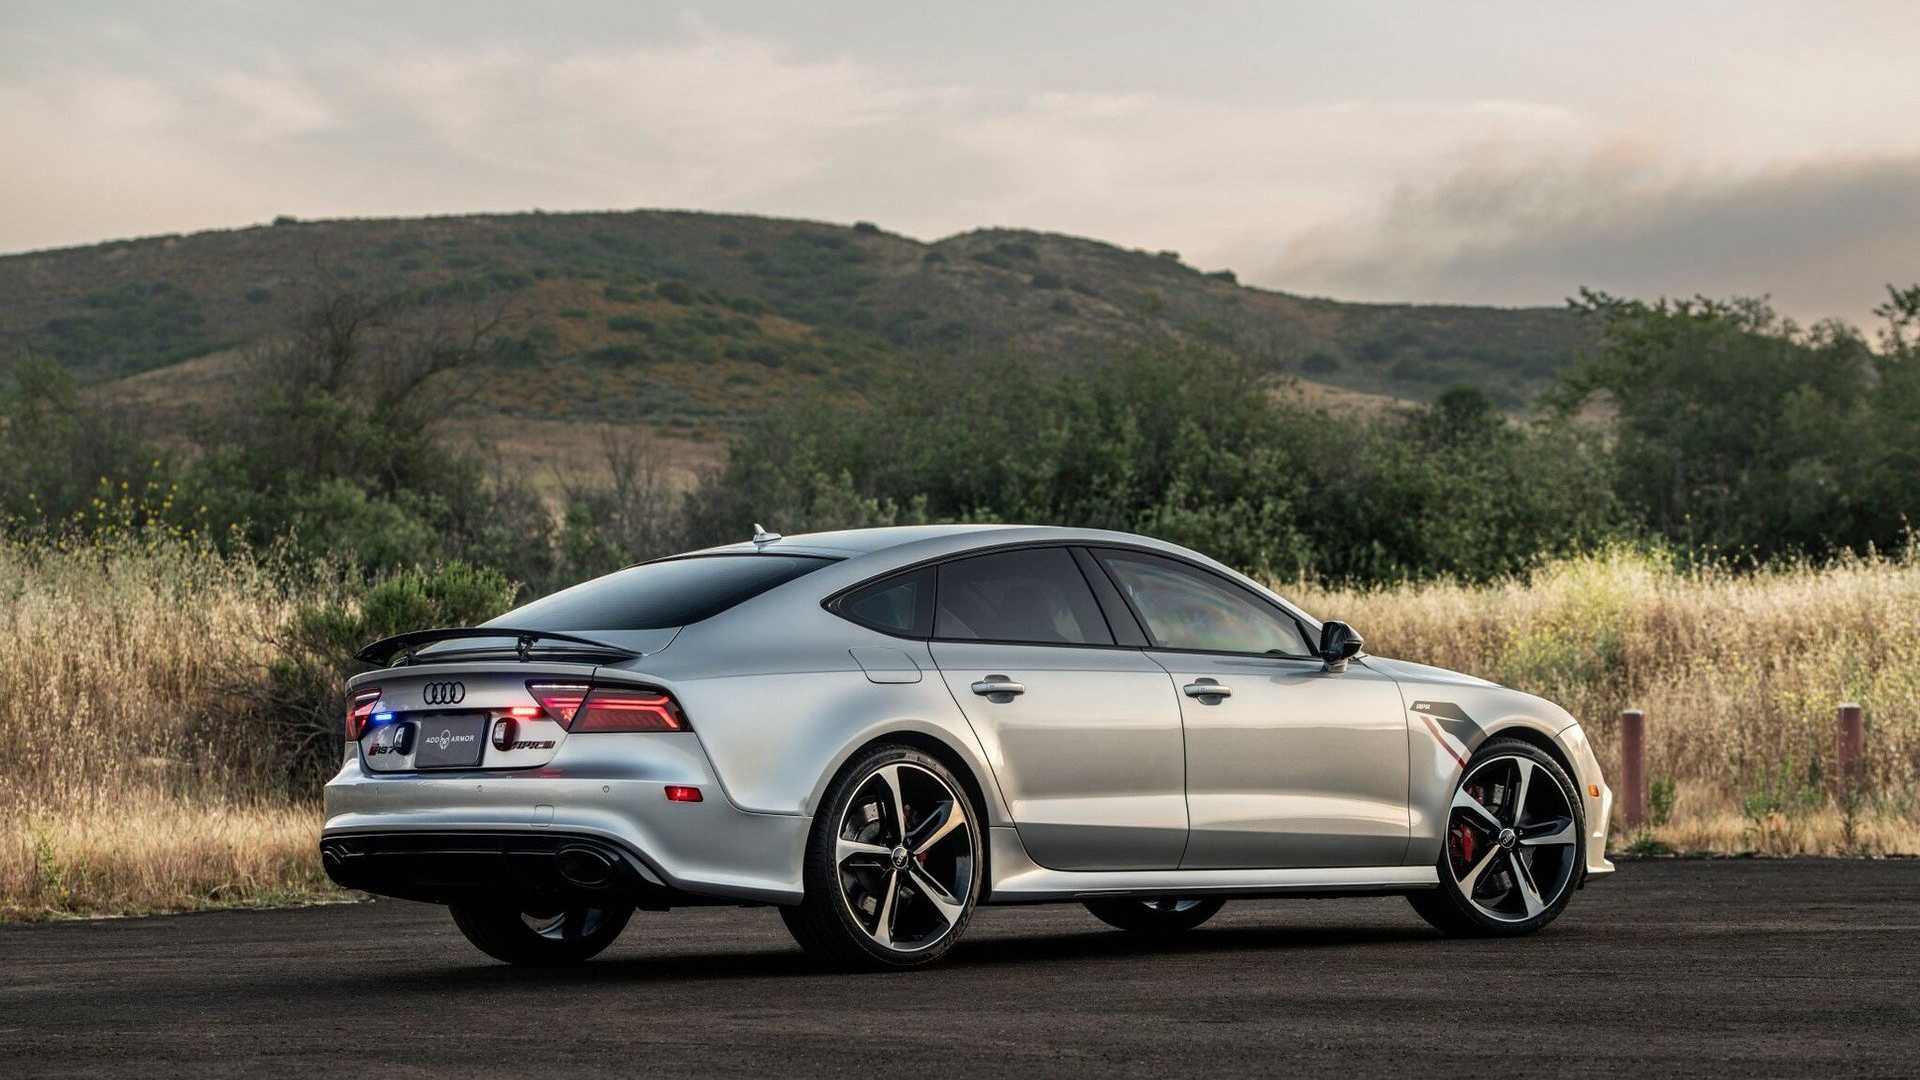 Audi Rs7 0-60 >> Armored Audi Rs7 Is The Fastest Armored Car Around Slashgear